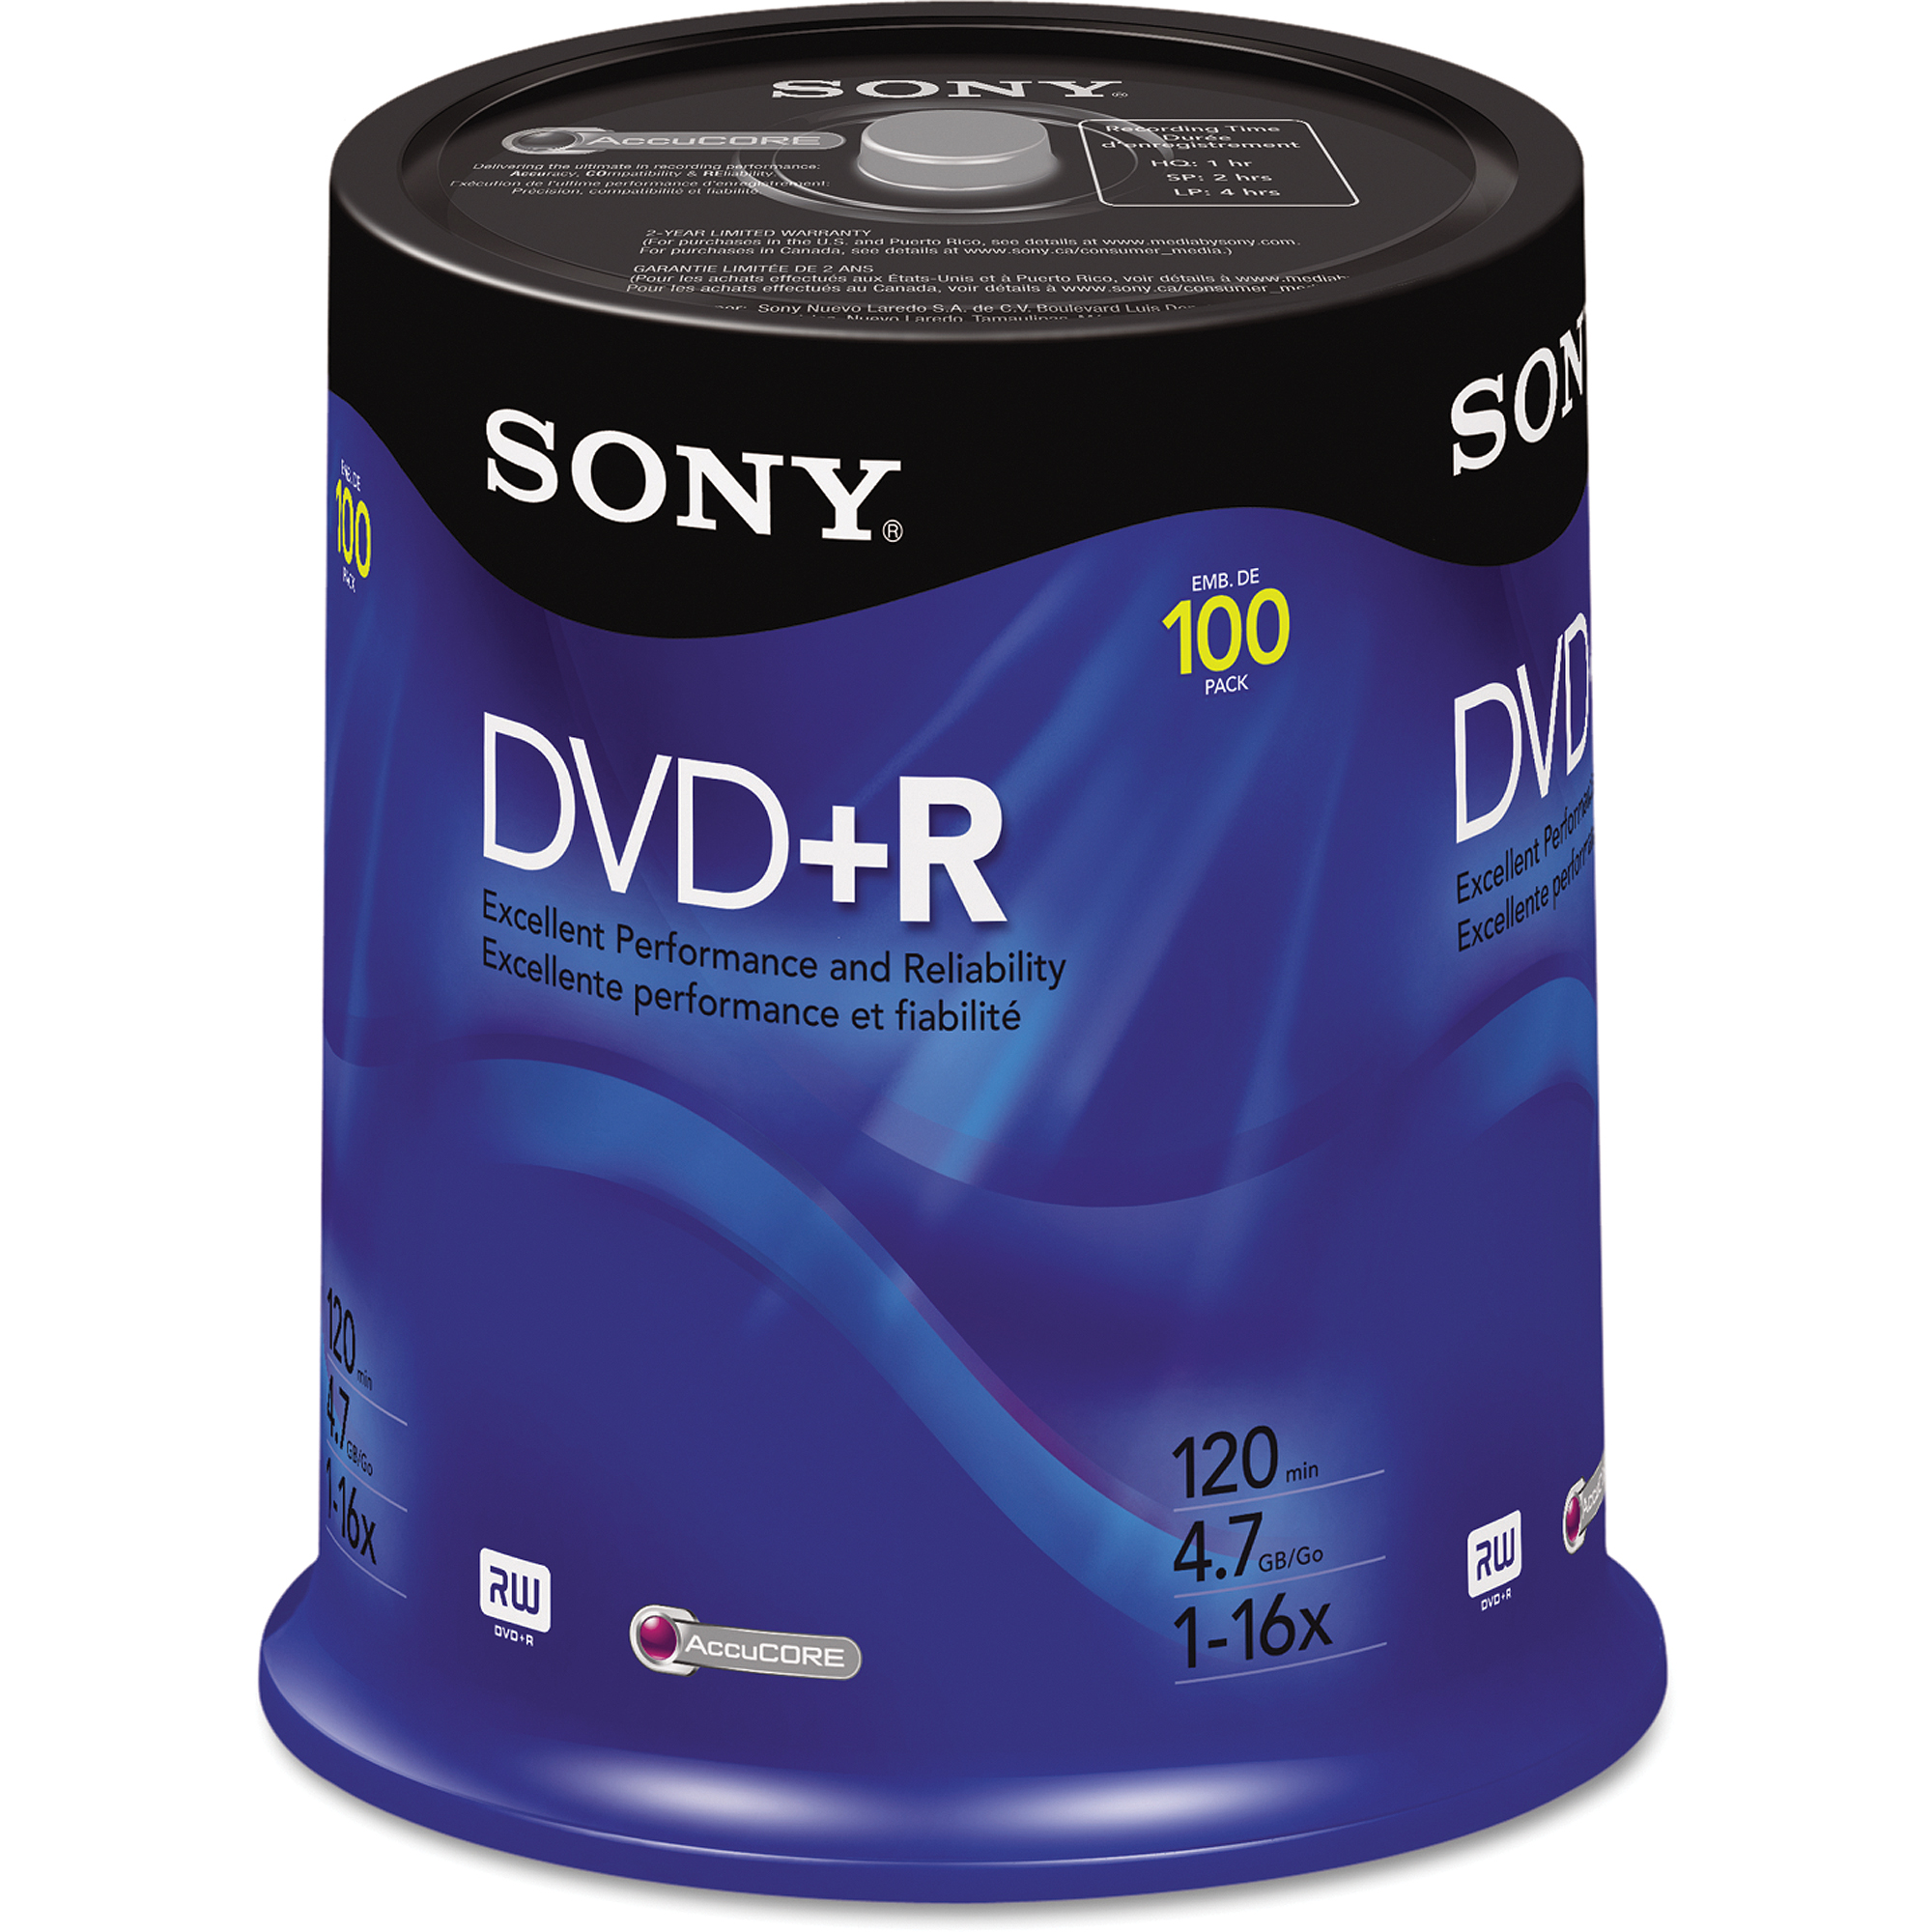 Sony 100pk DVD R Discs, 4.7GB, 16x Spindle